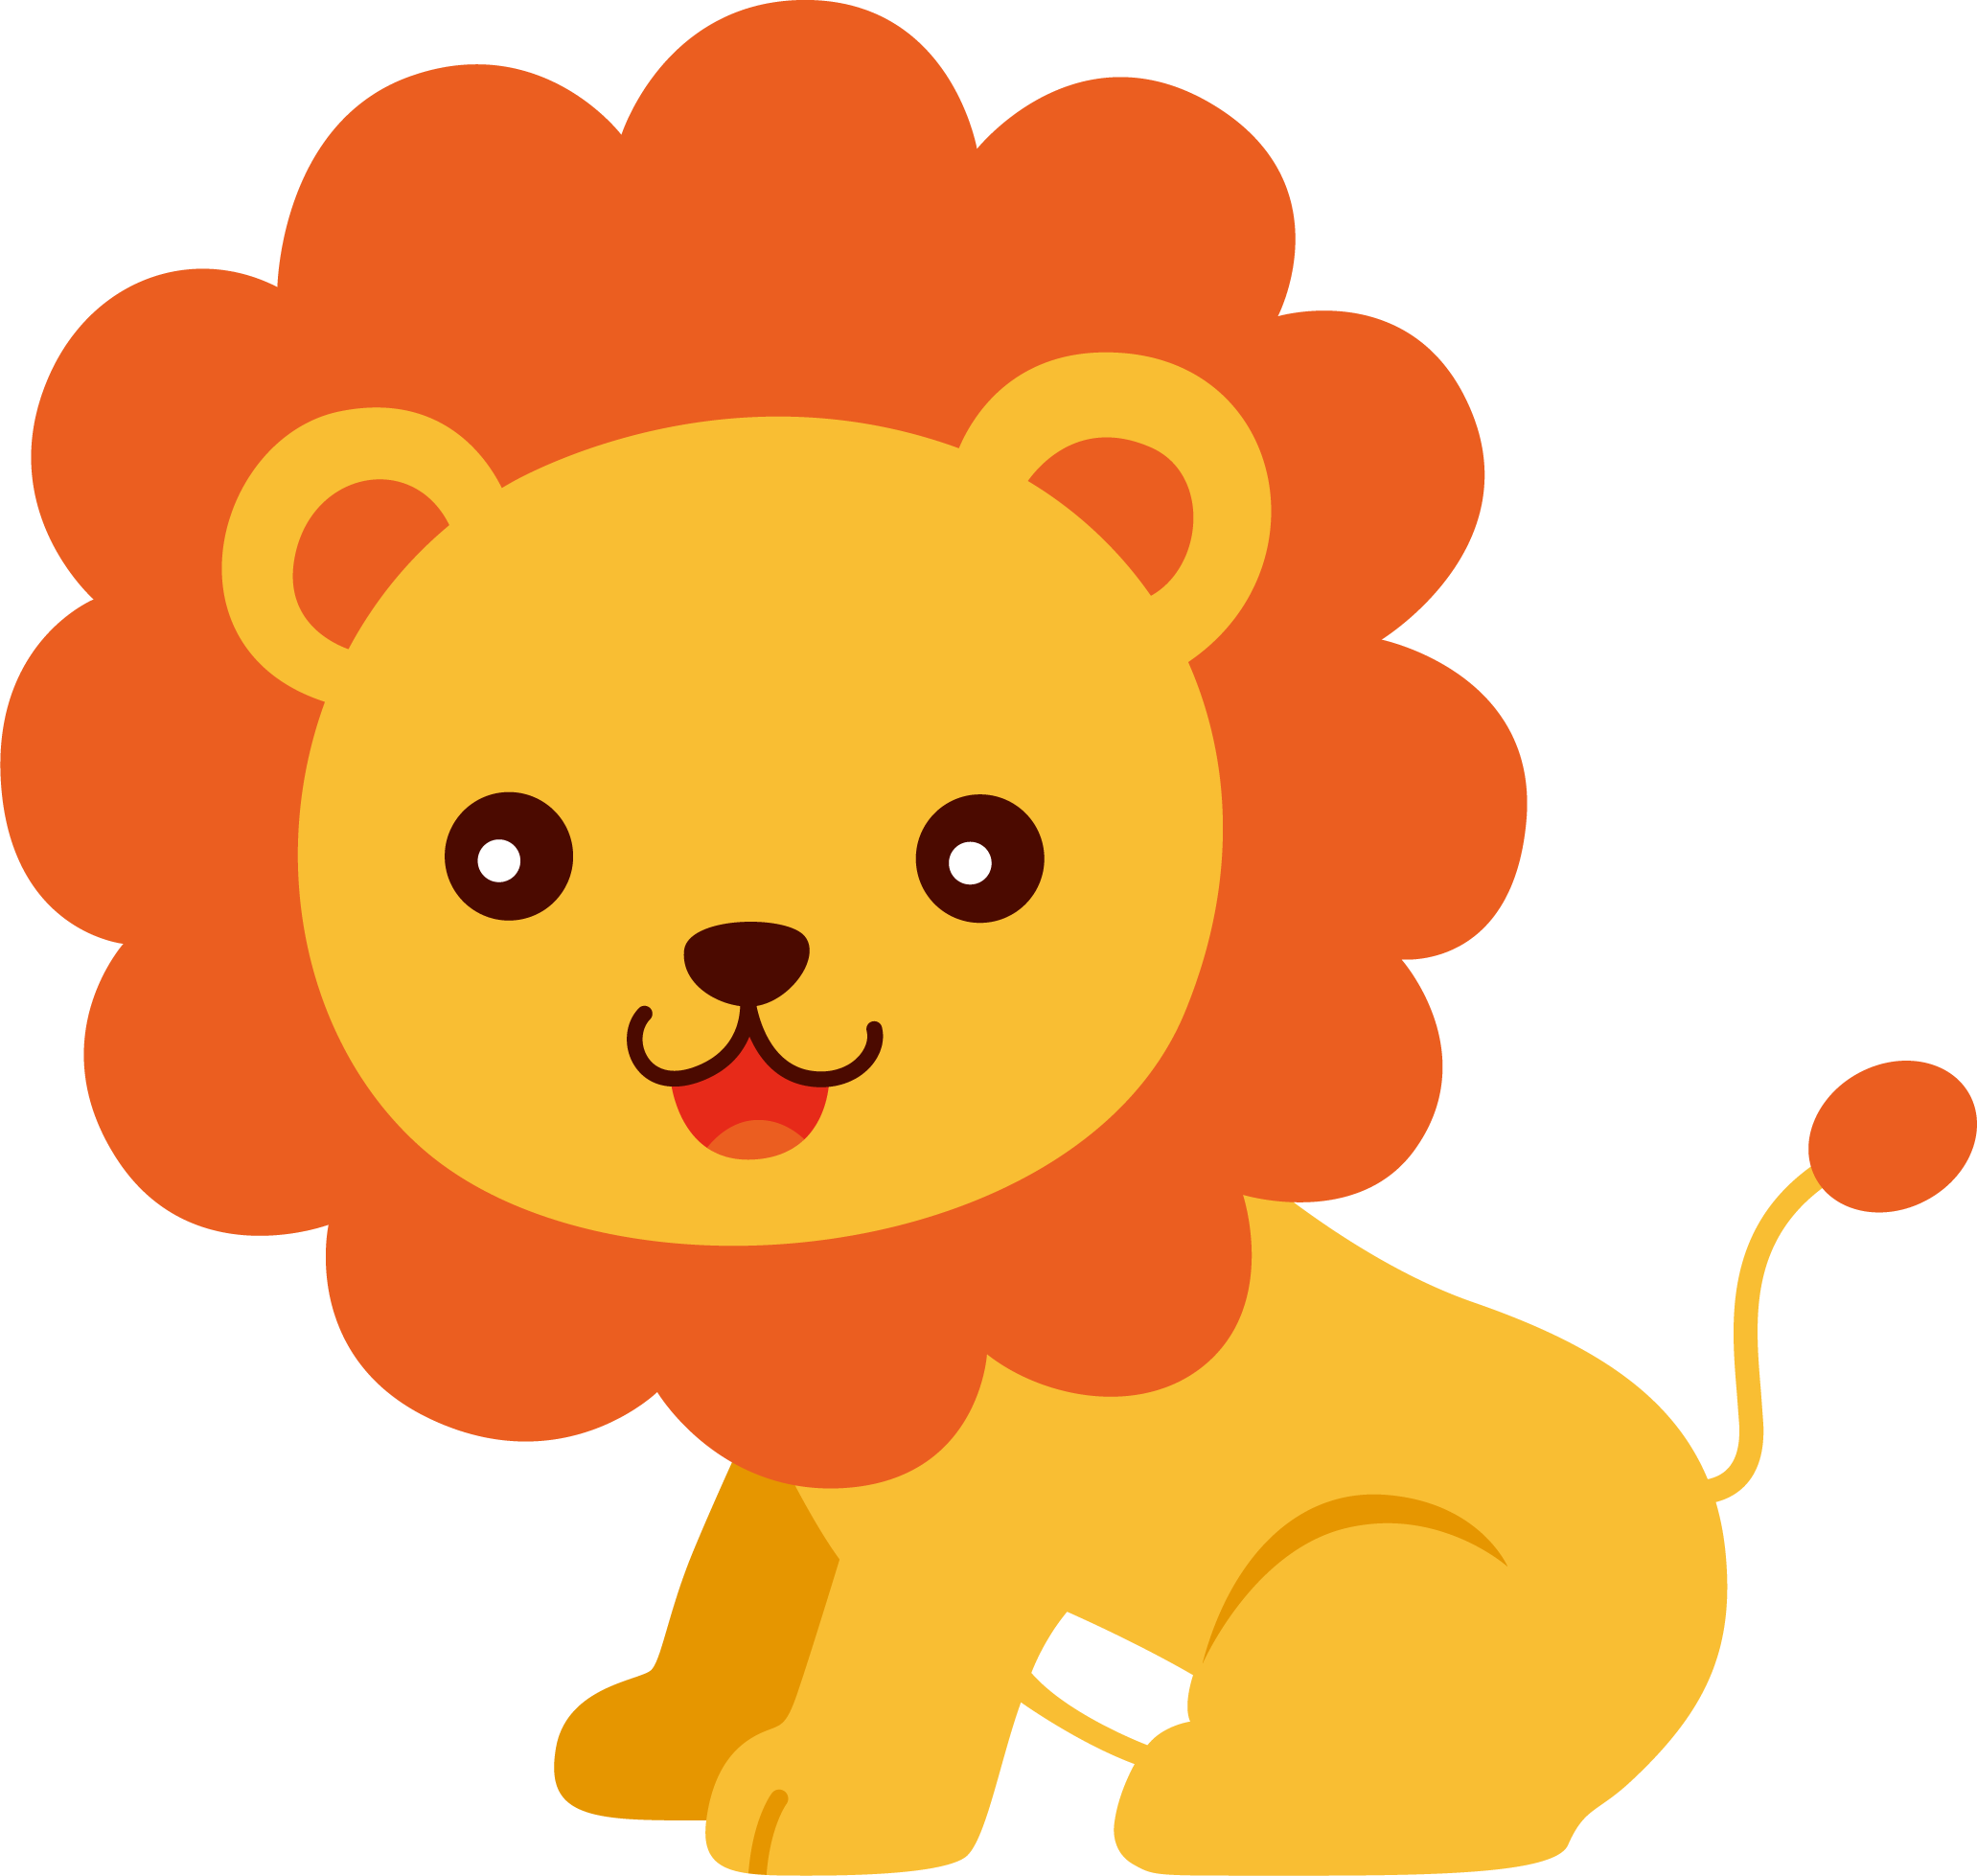 lion clipart at getdrawings com free for personal use lion clipart rh getdrawings com cute lion head clipart